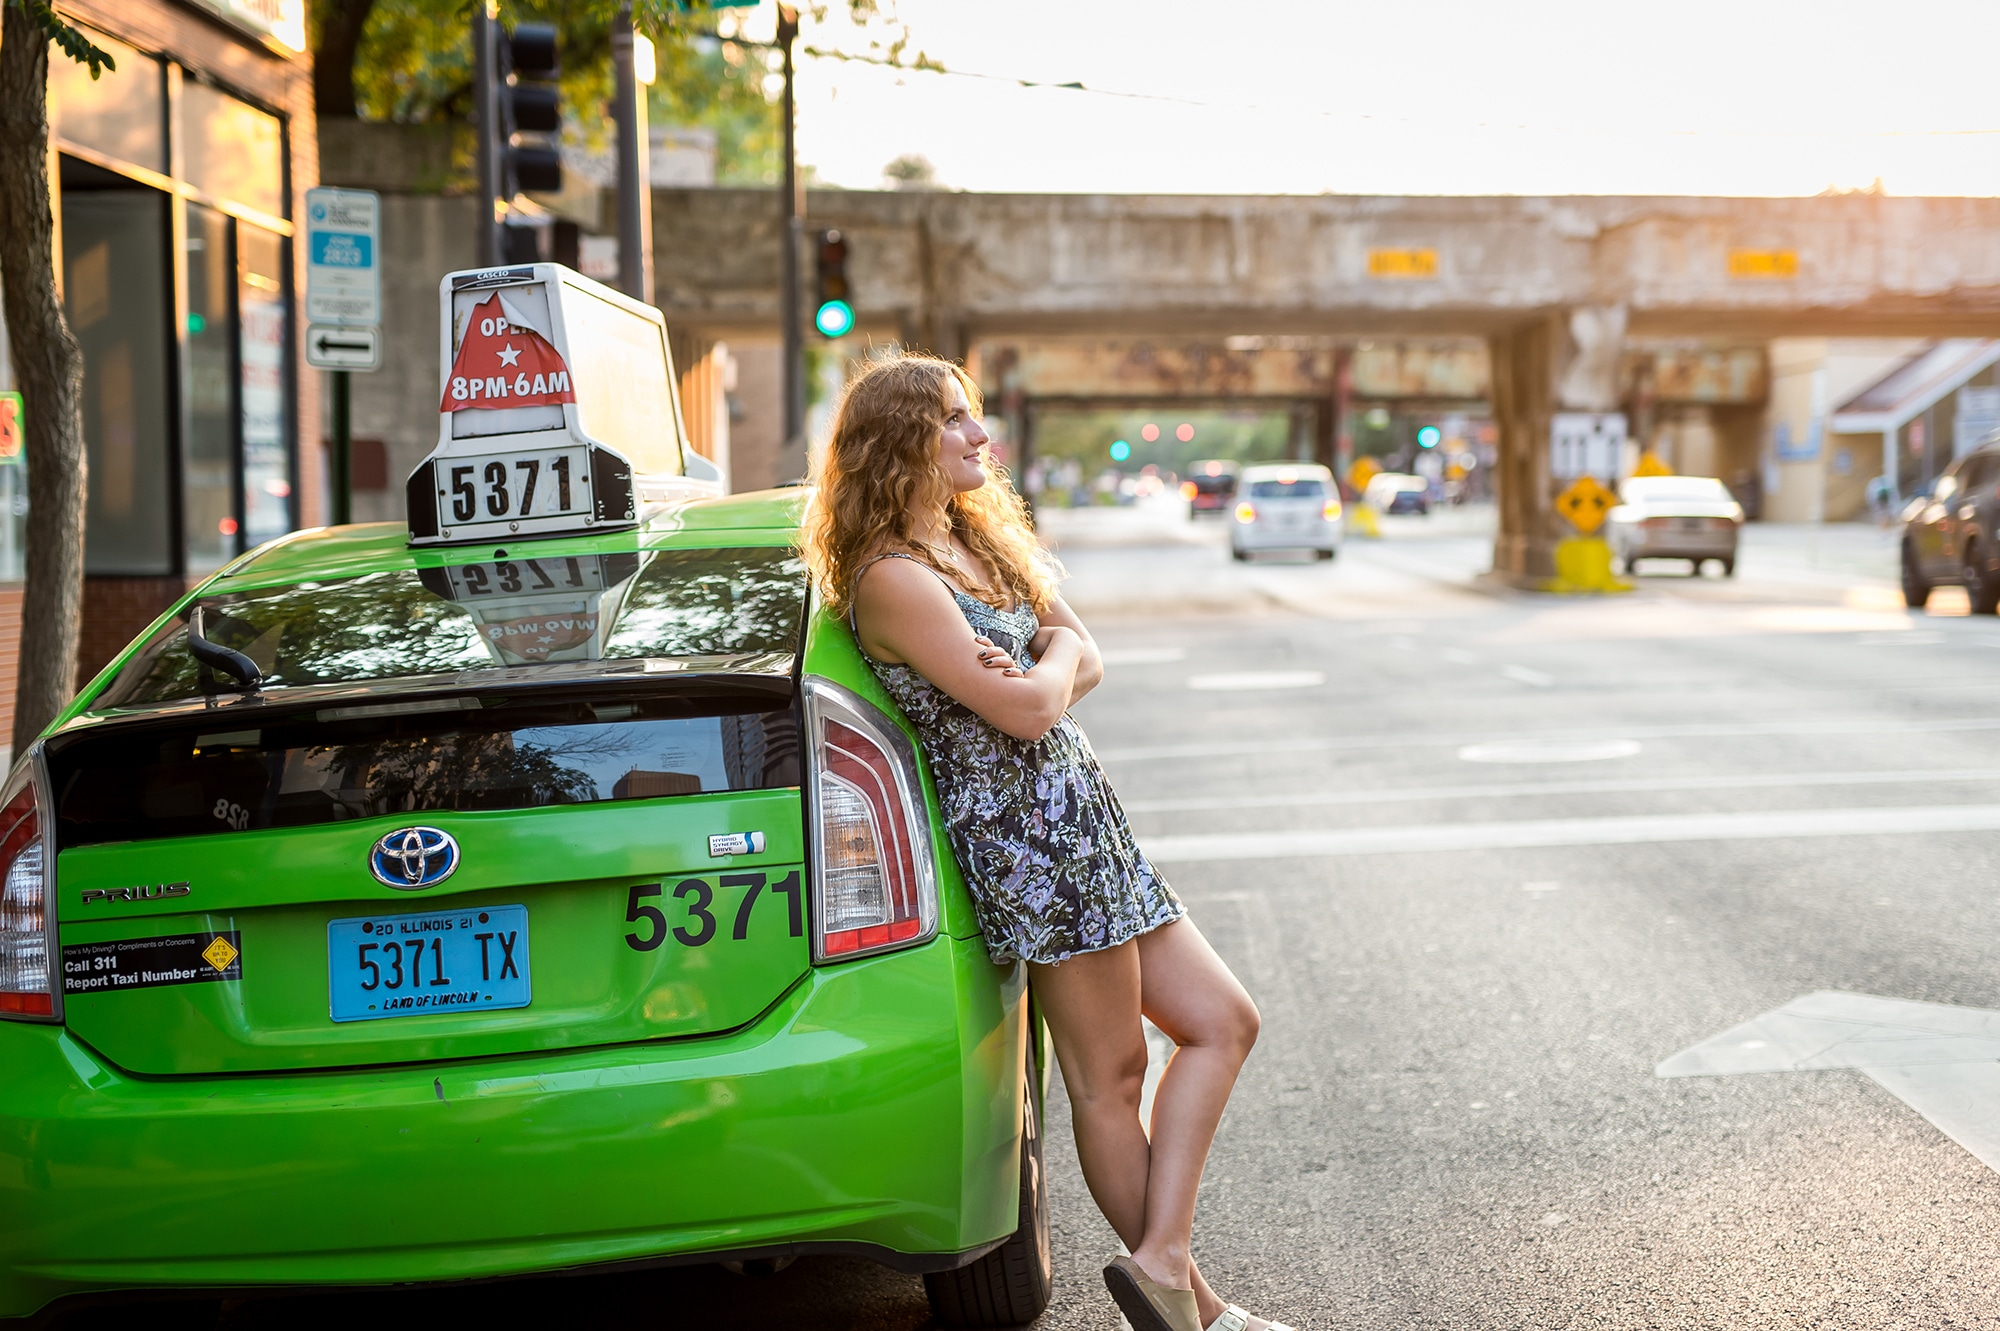 Girl wearing a blue patterned dress leaning on a green taxi cab, with her legs crossed, looking straight ahead. The sun is lighting up her hair.